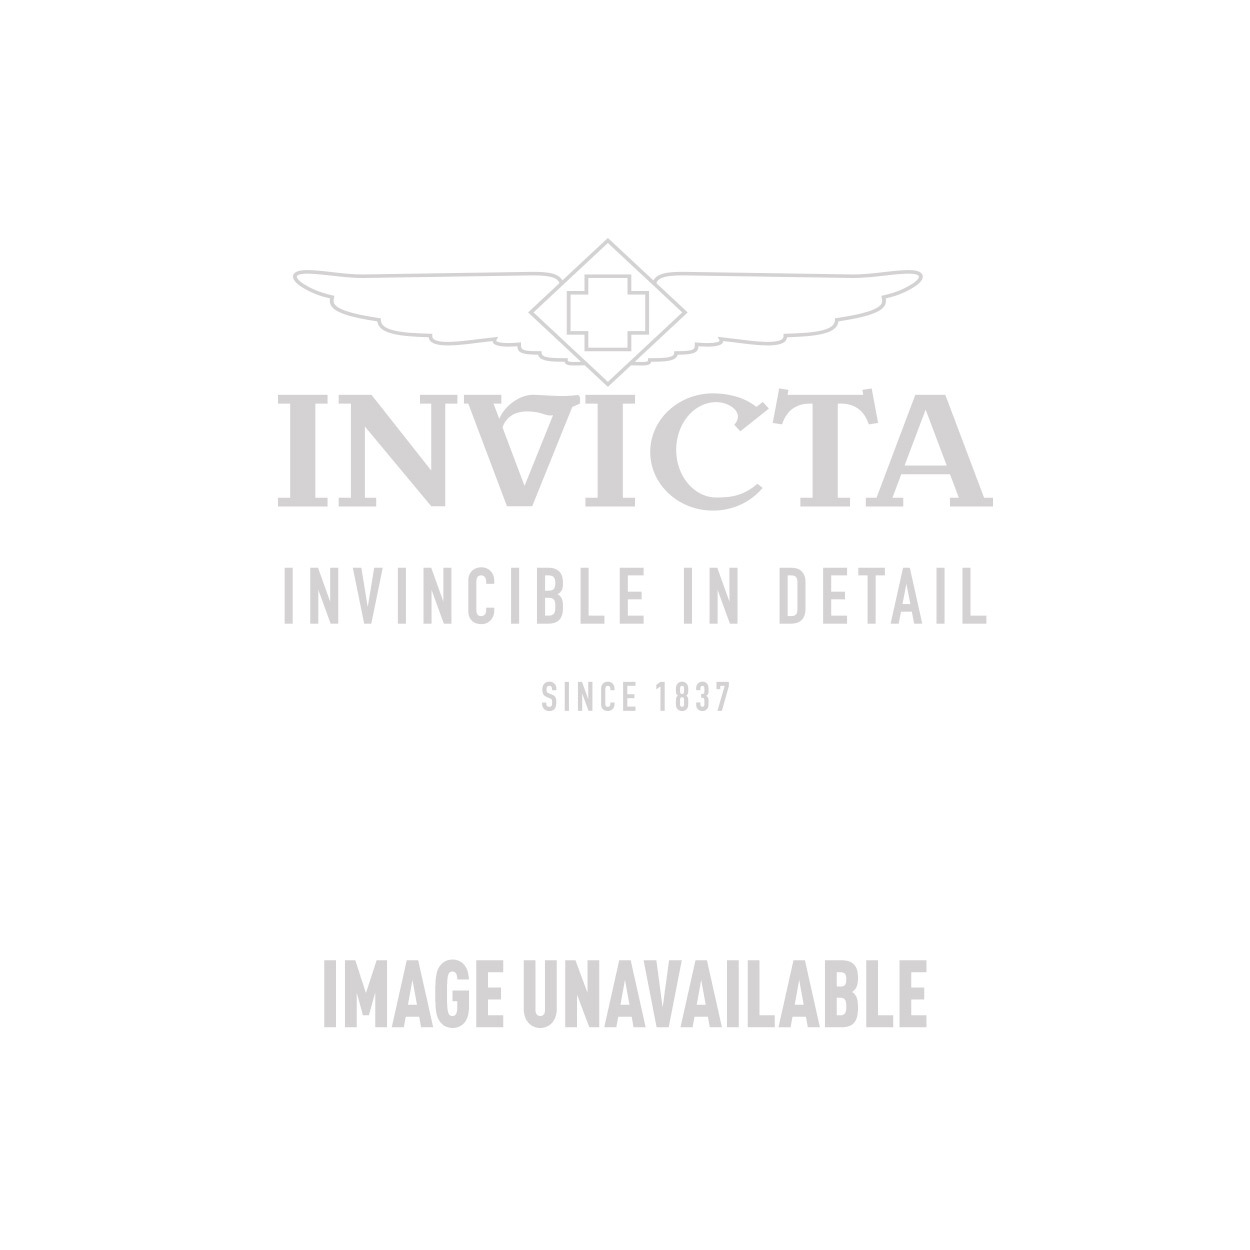 Invicta Pro Diver Quartz Watch - Stainless Steel case Stainless Steel band - Model 15337